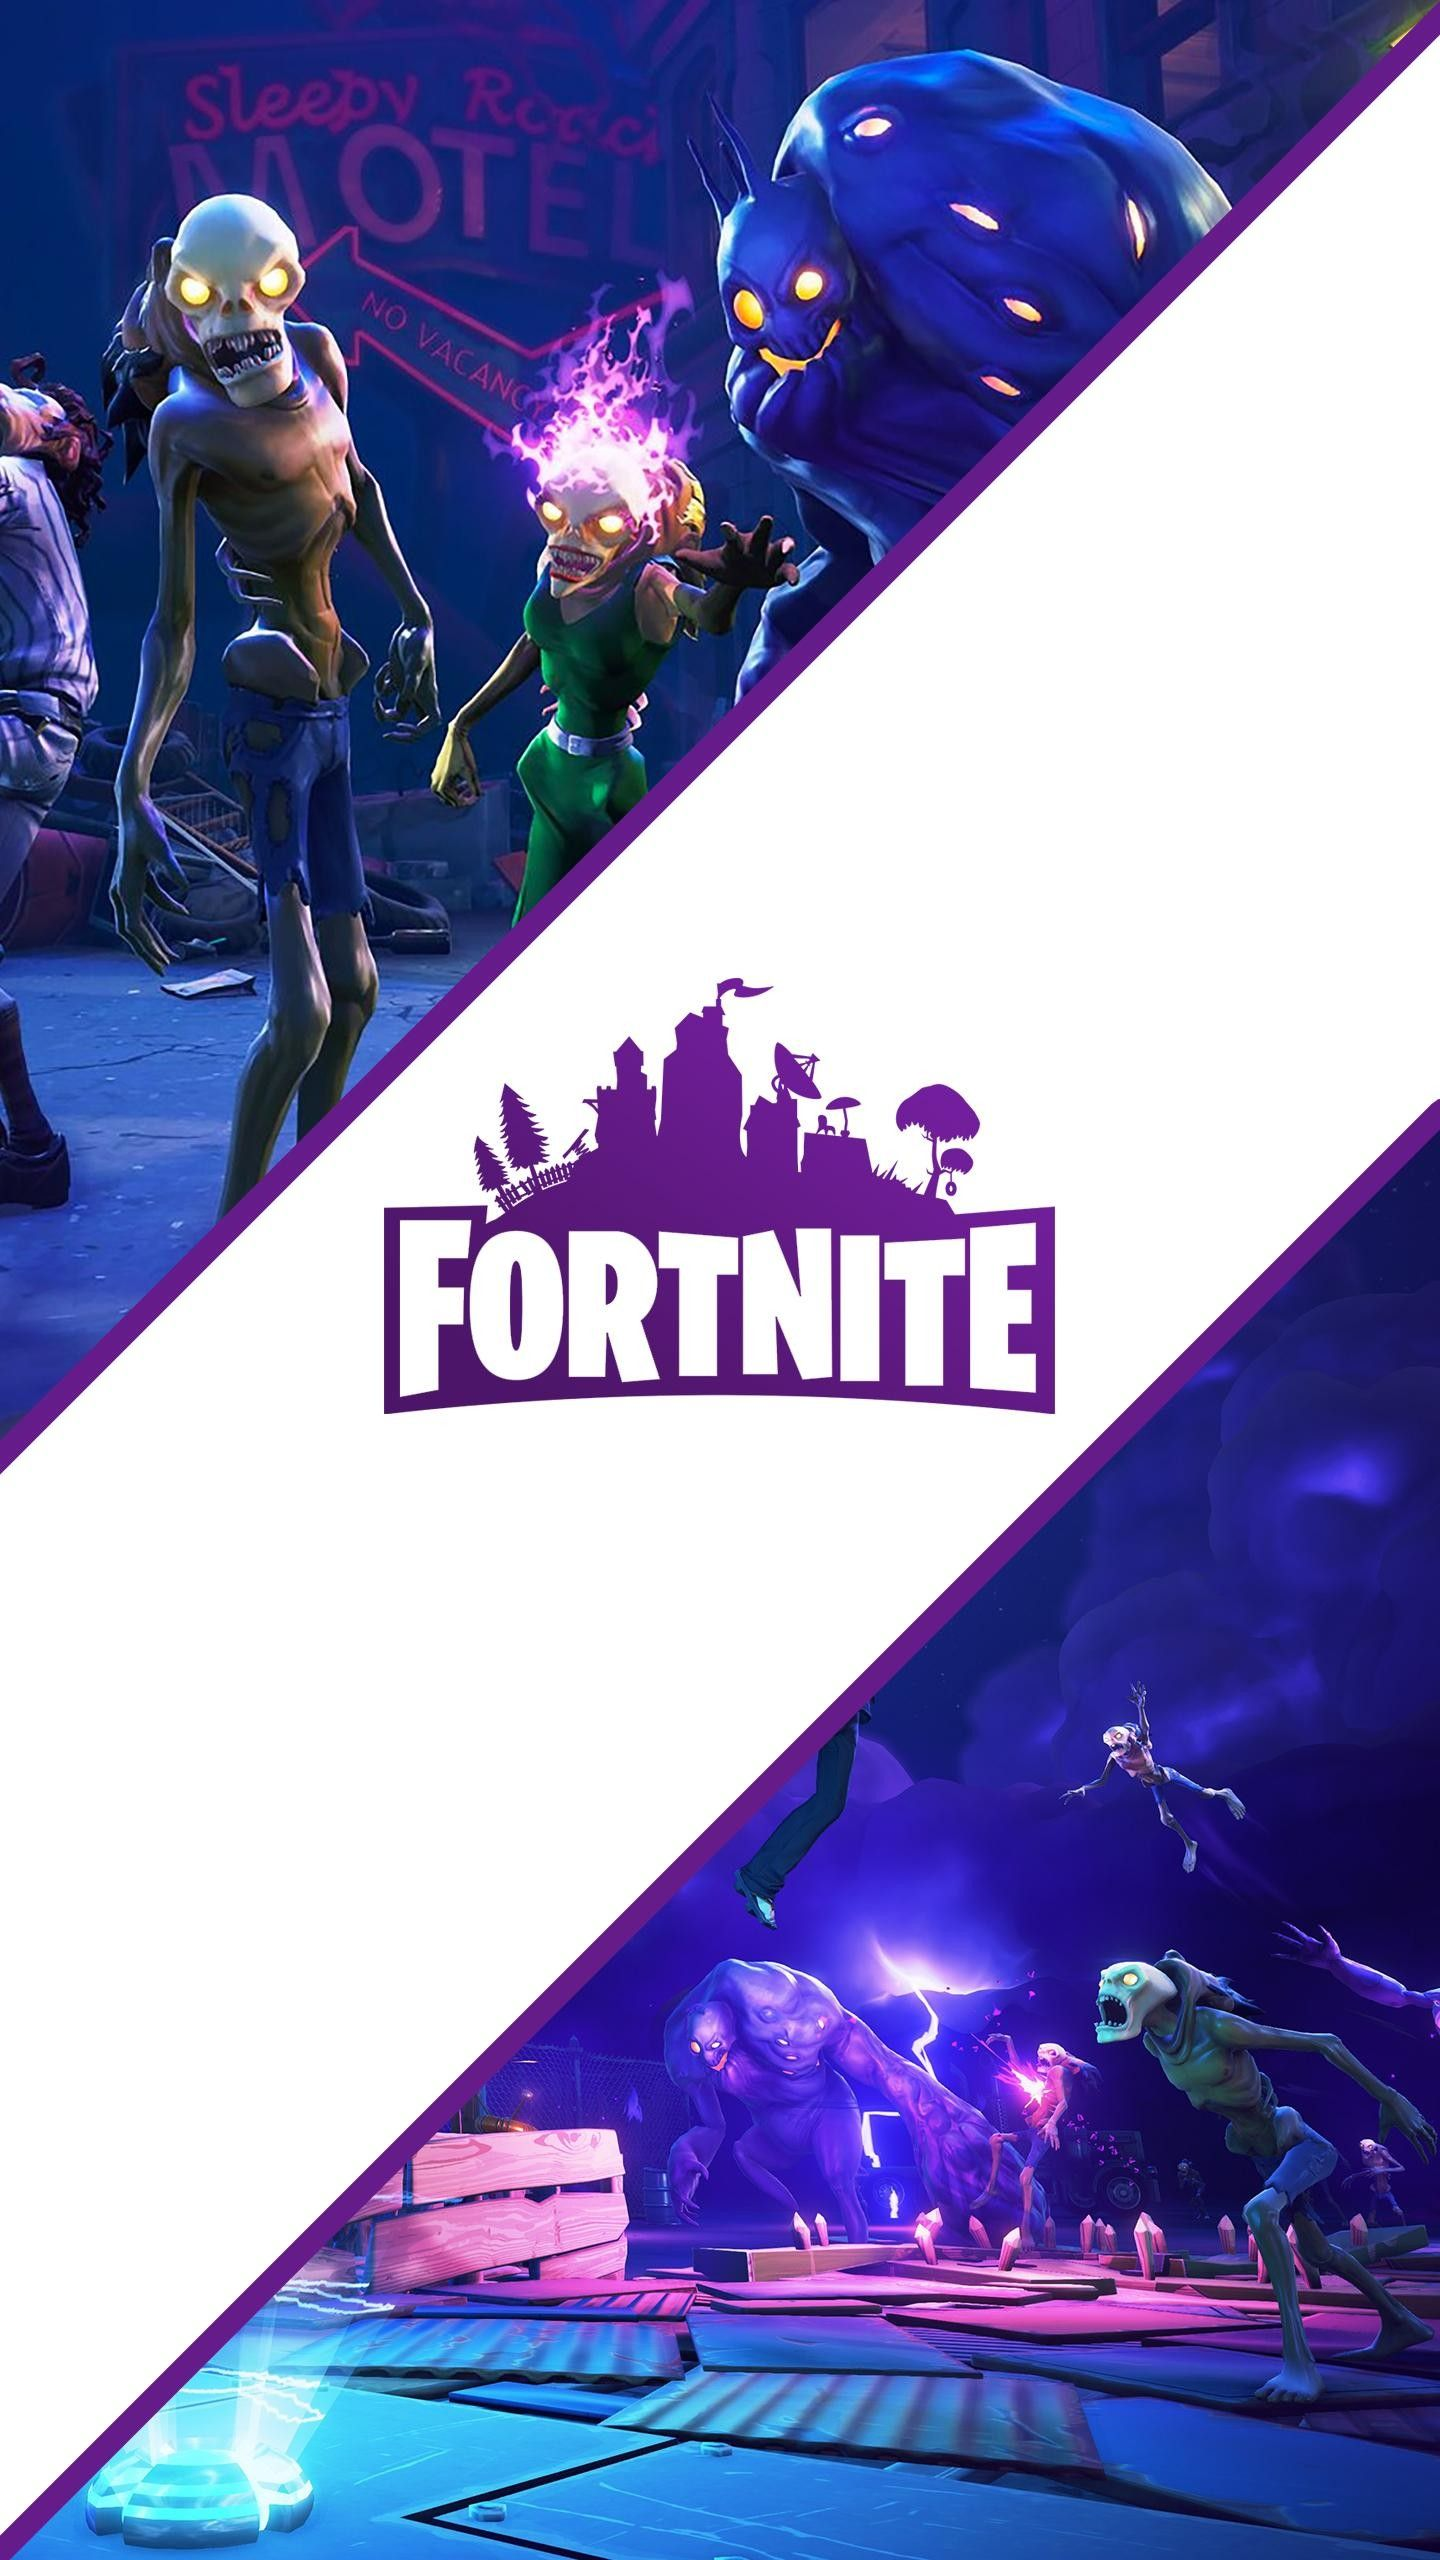 Phone Wallpaper For Fortnite Check More At Https Phonewallp Com Phone Wallpaper For Fortnite Gaming Wallpapers Best Gaming Wallpapers Fortnite Epic fortnite wallpaper phone